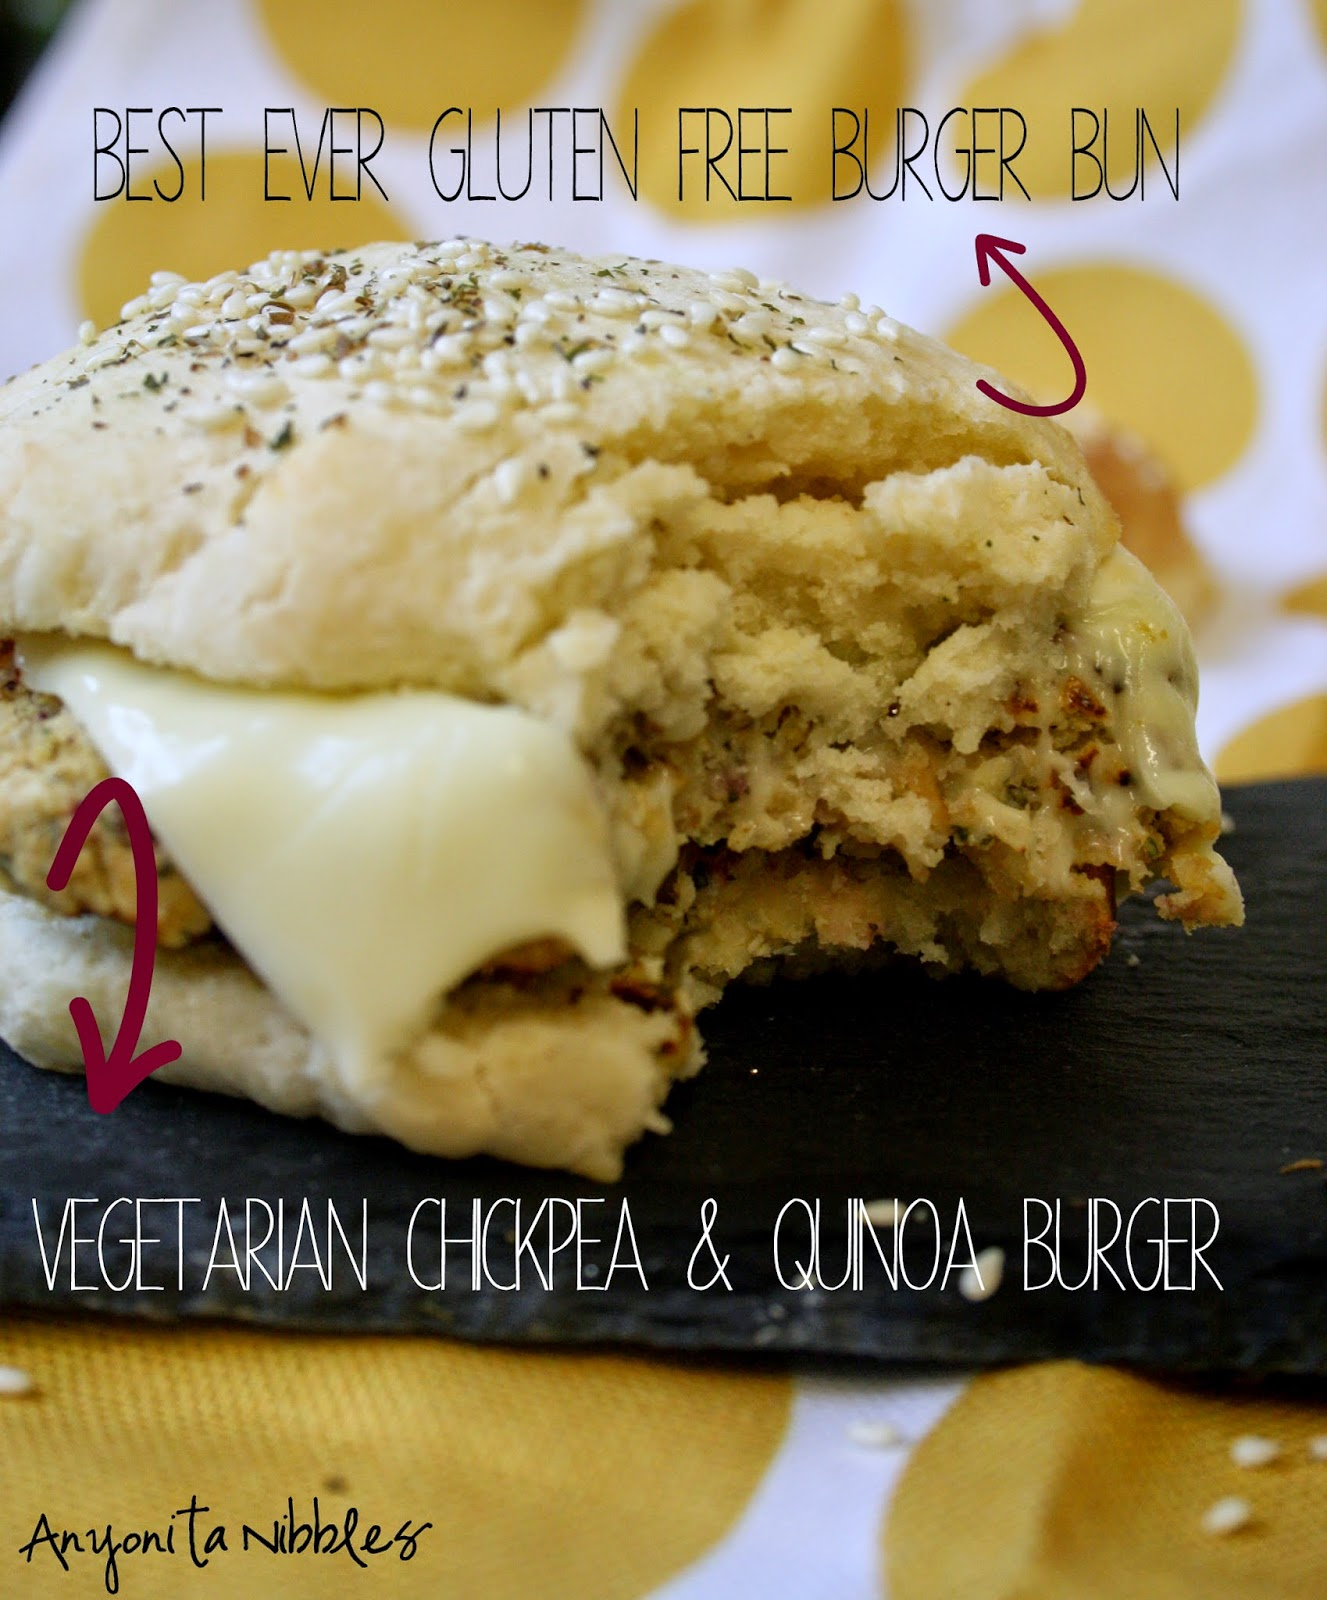 I love how easy and delicious these recipes sound! The quinoa chickpea burgers are moist and the gluten free bread is easy!